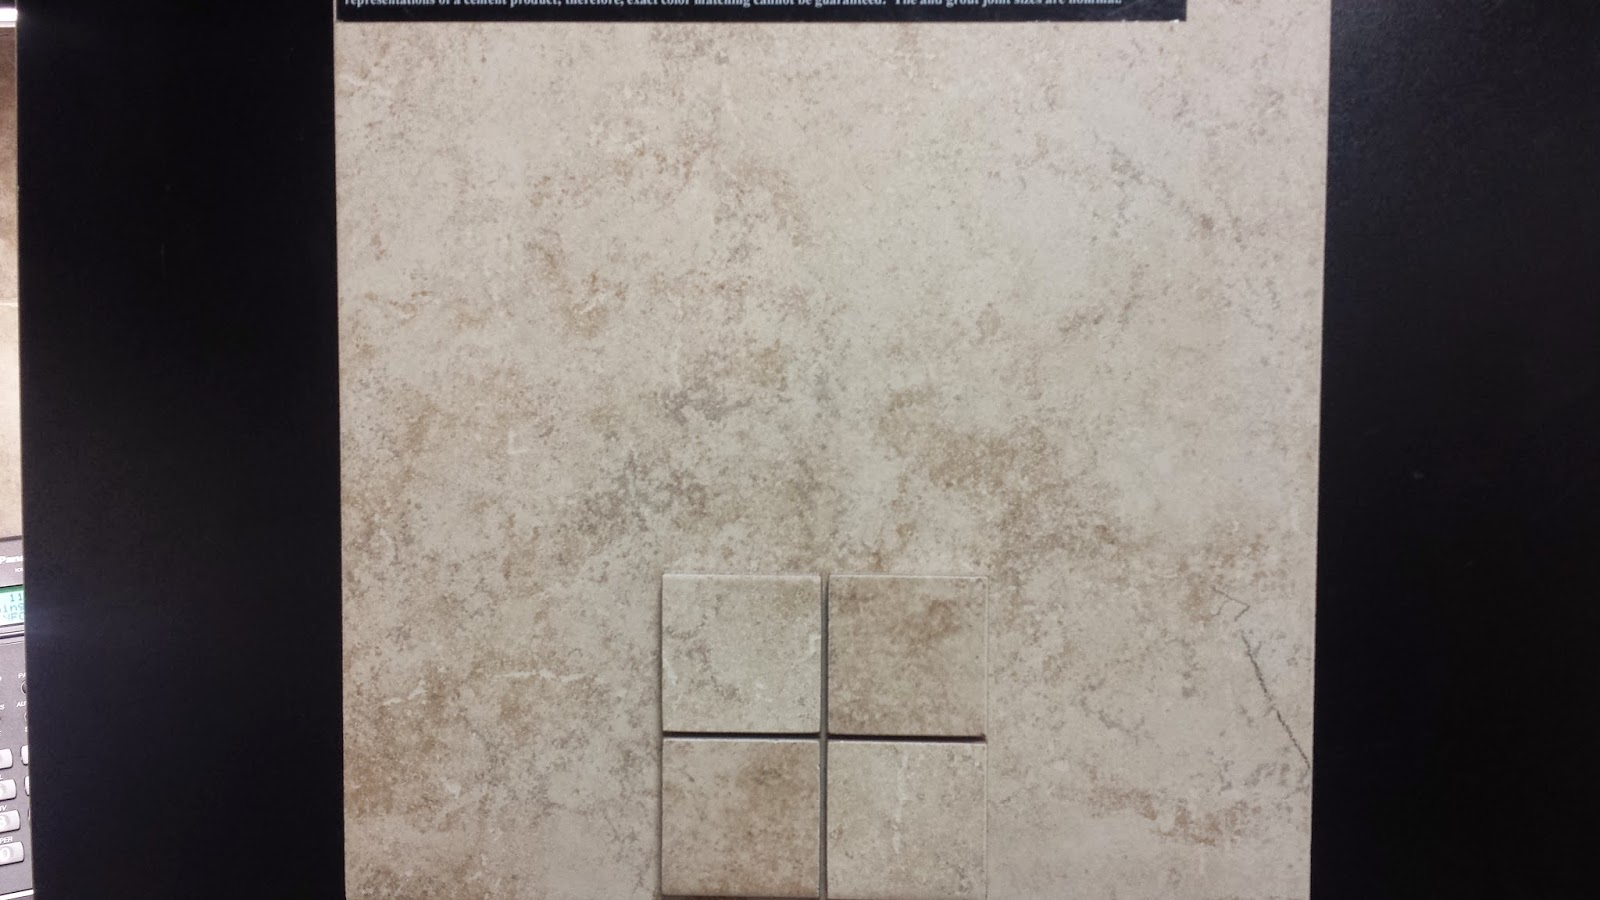 Fine 1 X 1 Ceiling Tiles Thin 12X12 Ceramic Tiles Shaped 13X13 Floor Tile 2 X4 Ceiling Tiles Young 2X4 Drop Ceiling Tiles Soft2X6 Subway Tile Our 1st New Home: From Start To Finish: Flooring   TAC Ceramic And ..